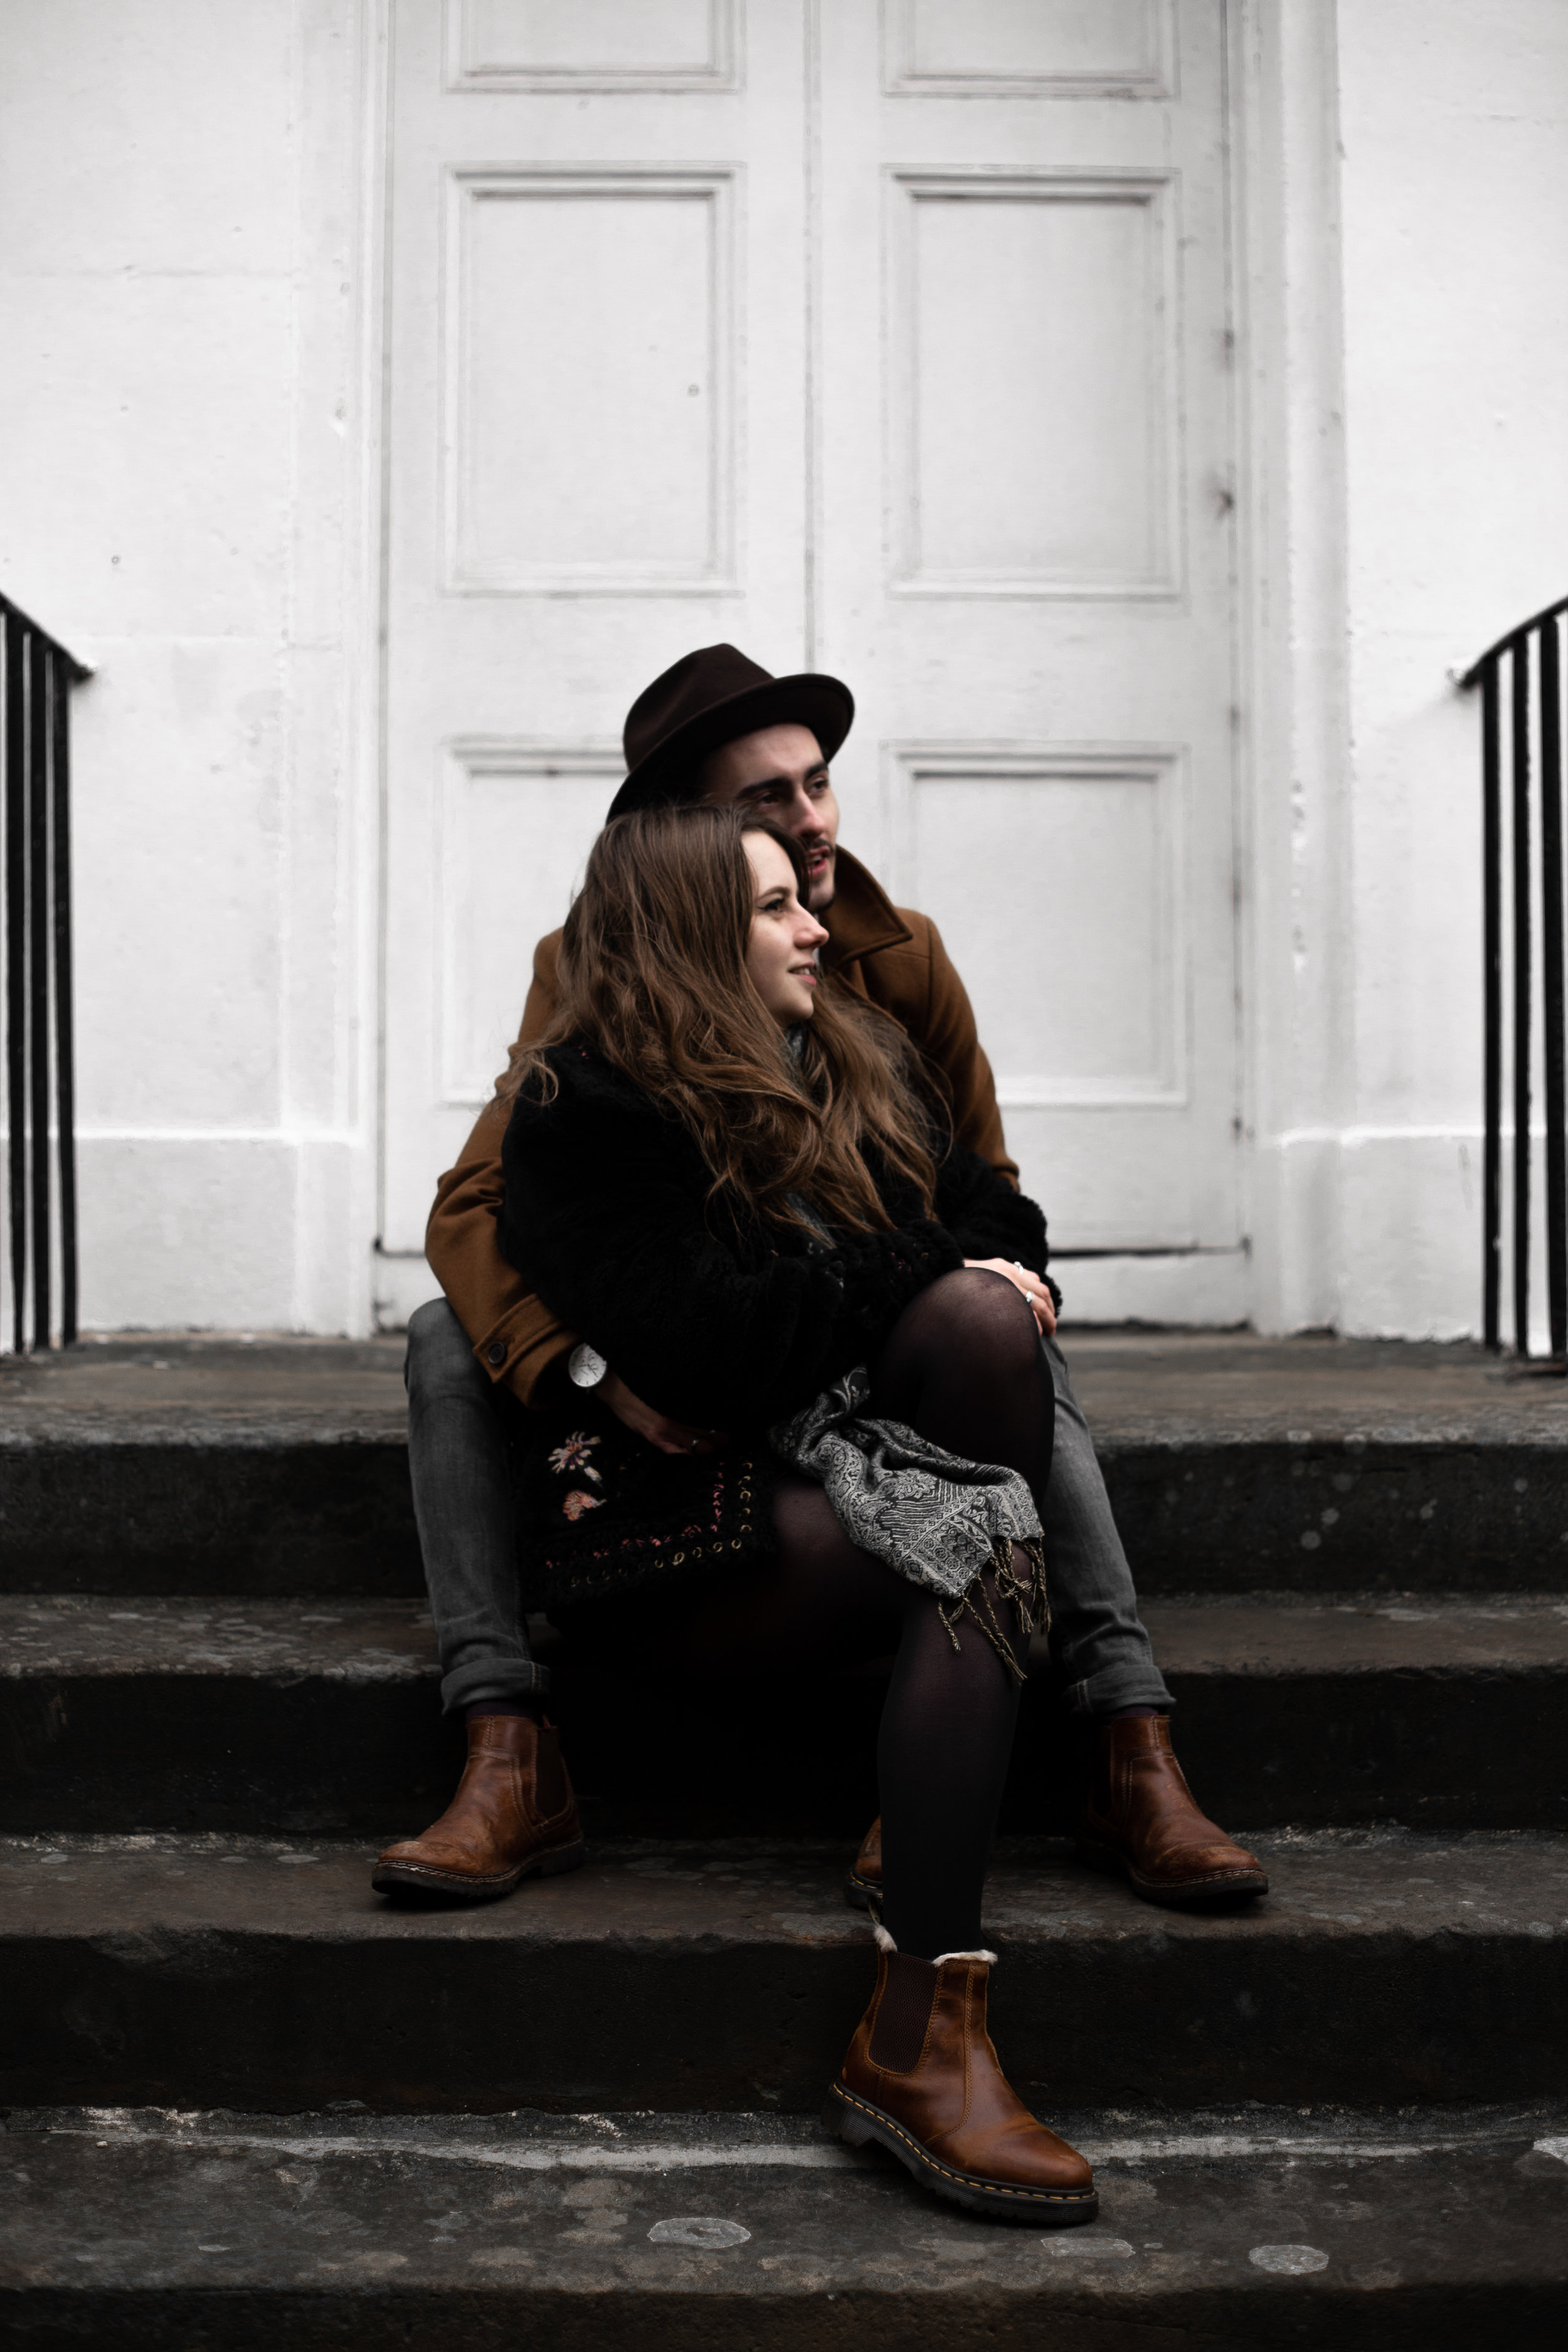 Paula_Russell_Photography_Edinburgh_Couple_Session_10